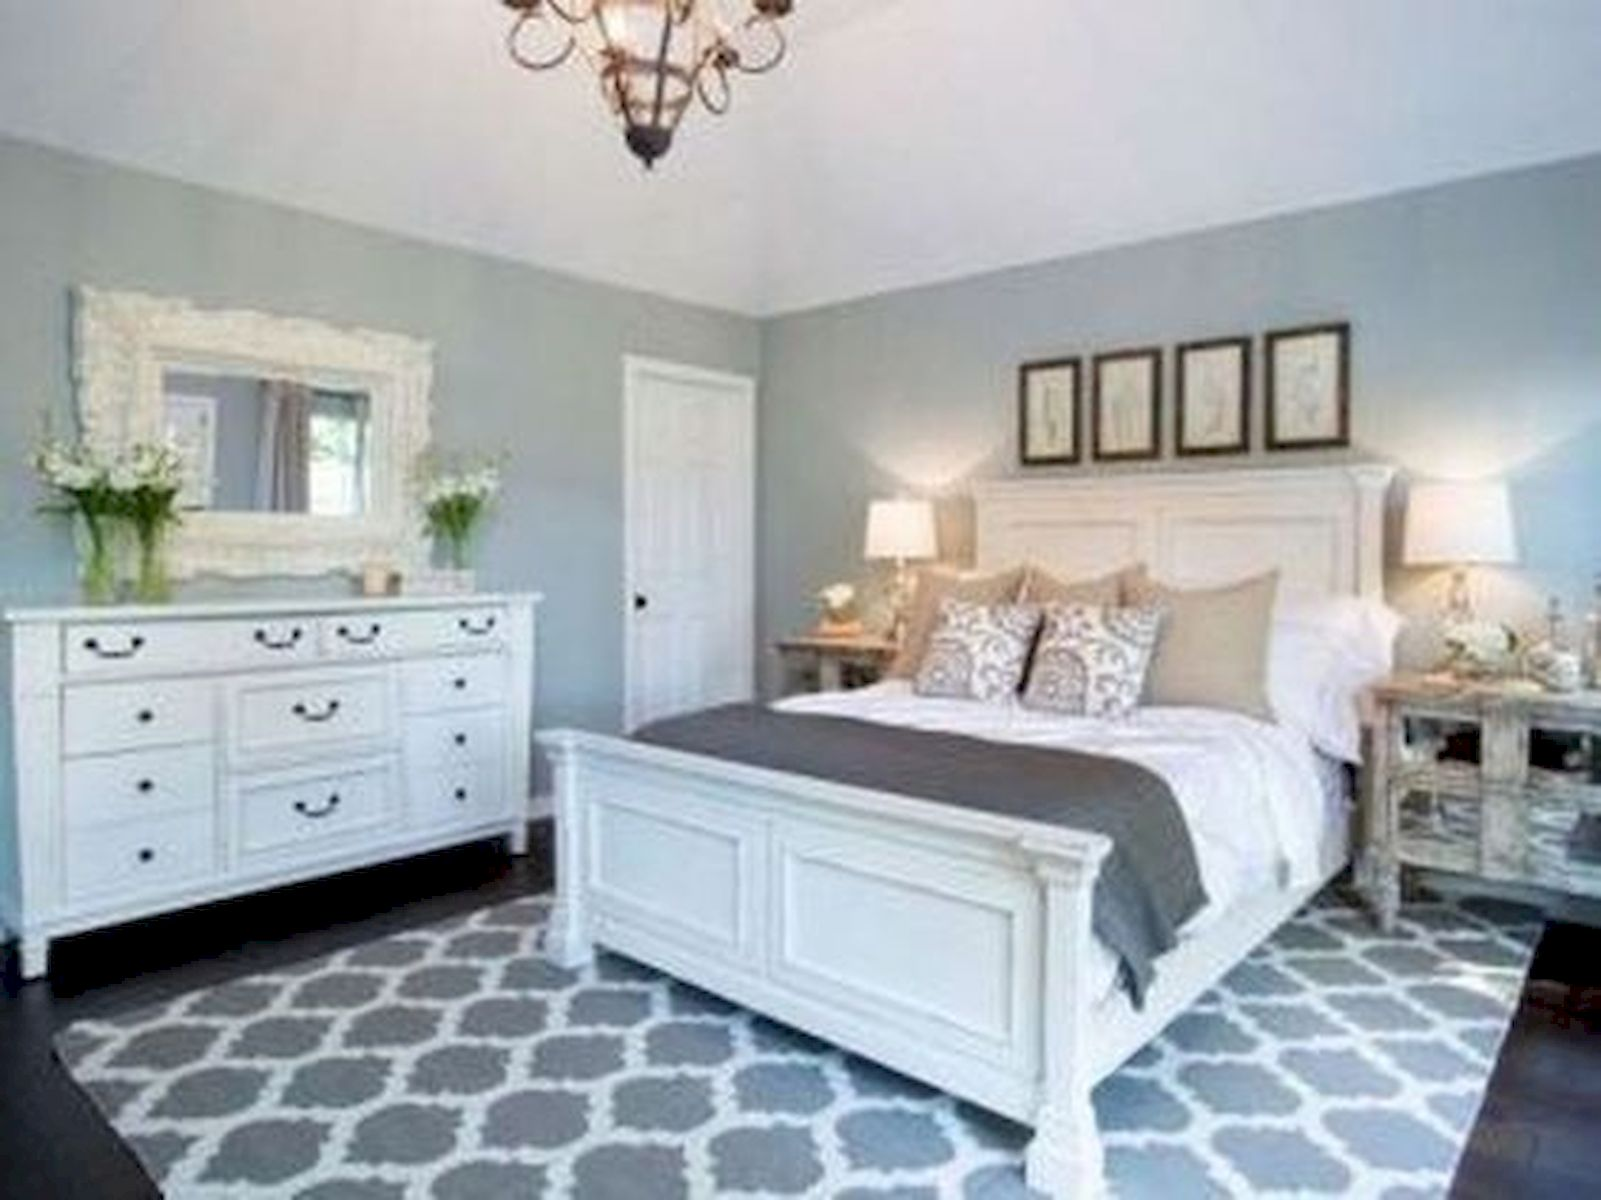 44 Awesome White Master Bedroom Design and Decor Ideas For Any Home Design (39)